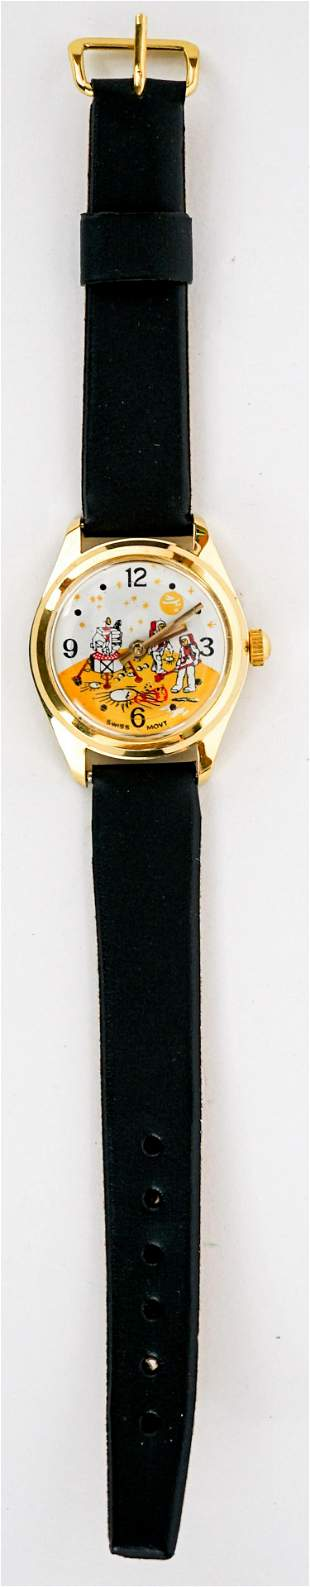 1960's/70's Moon Space Character Watch